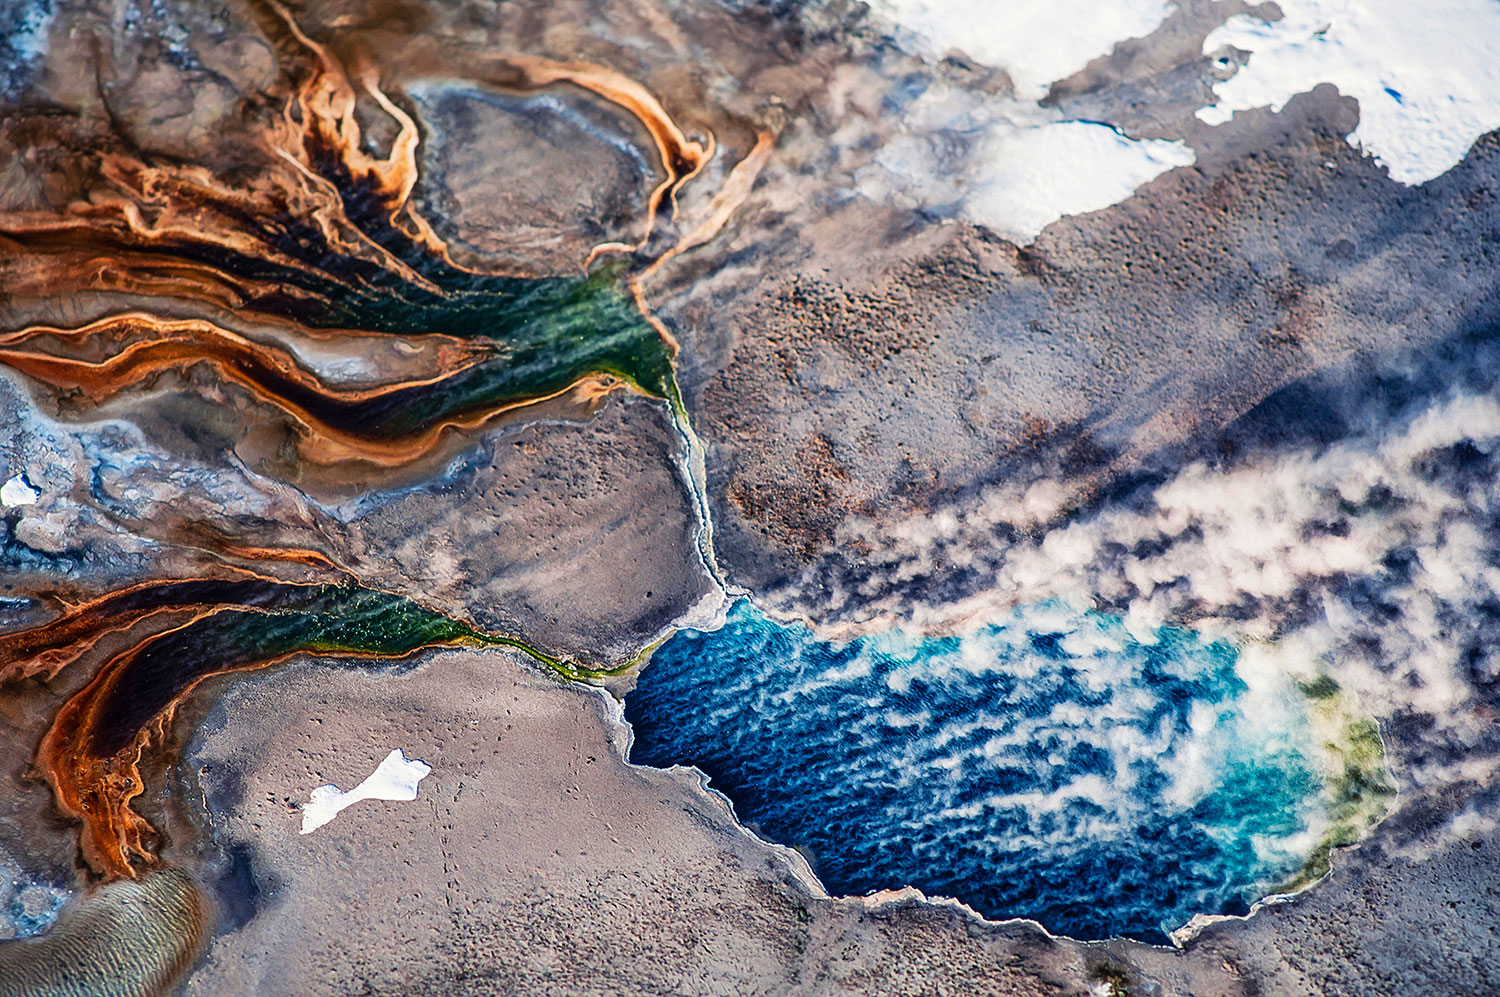 Aerial photo of thermal pool, Yellowstone Park